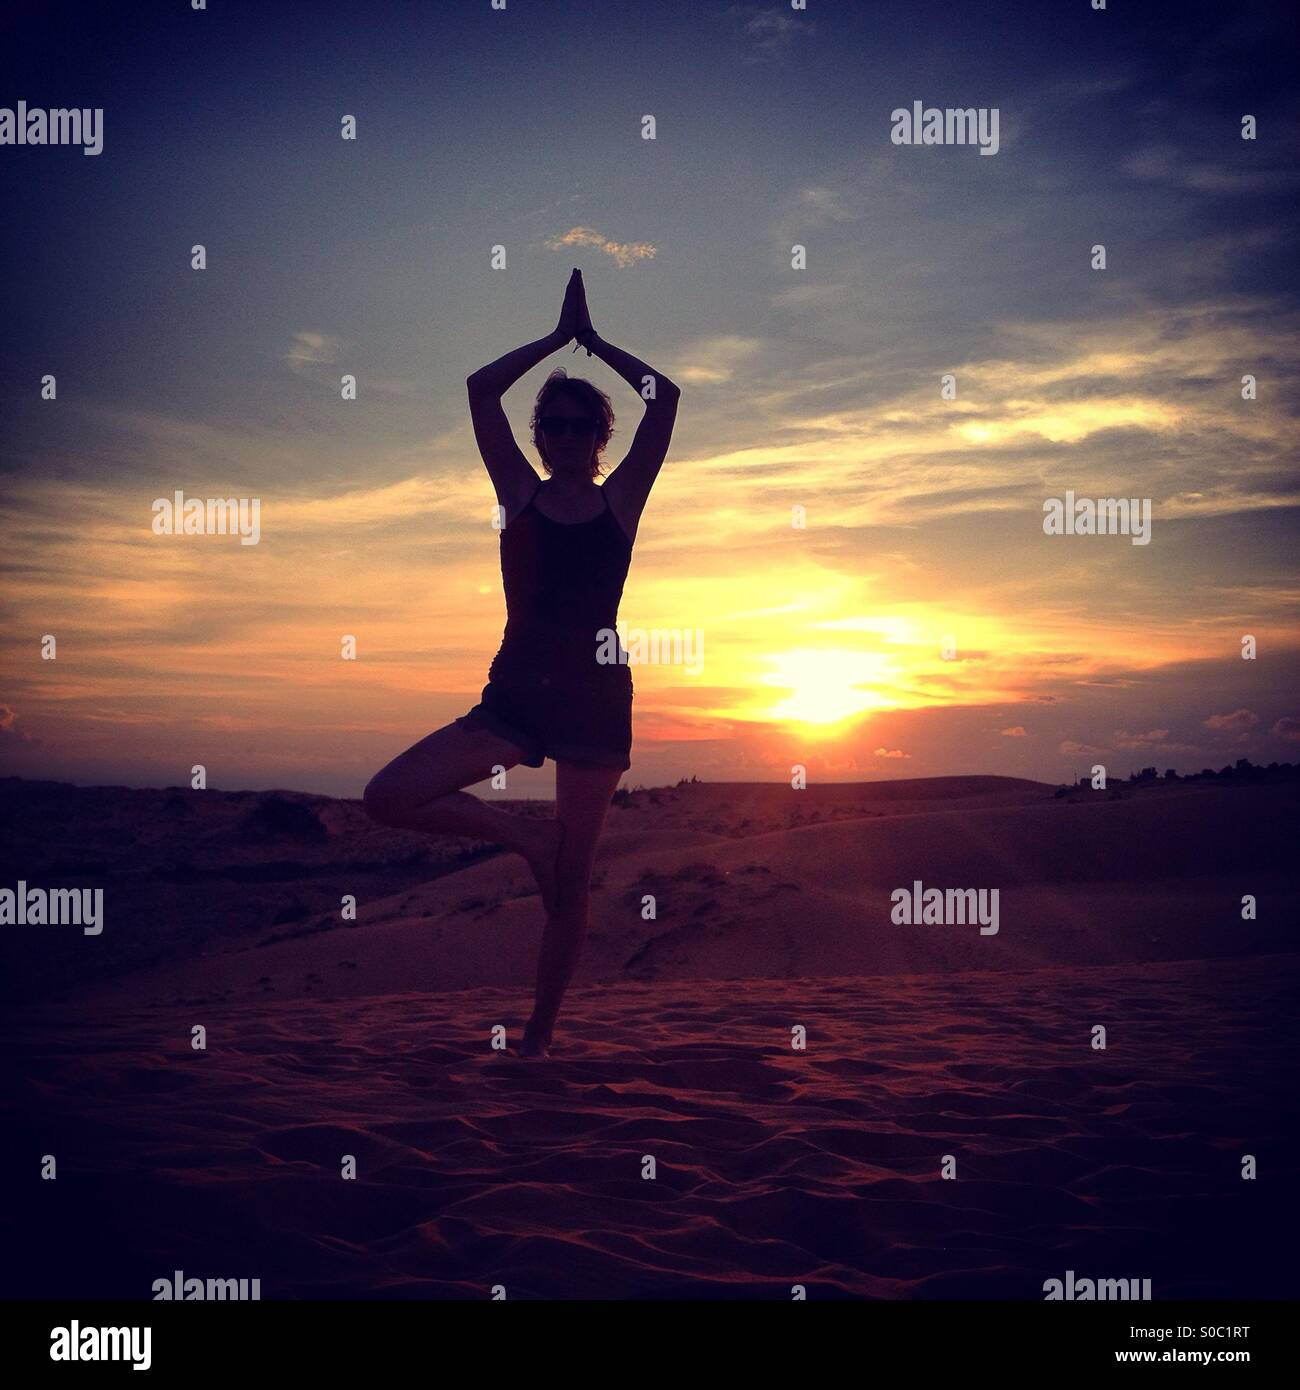 Silhouette Of Tree Yoga Pose In Front Sunset On Beach